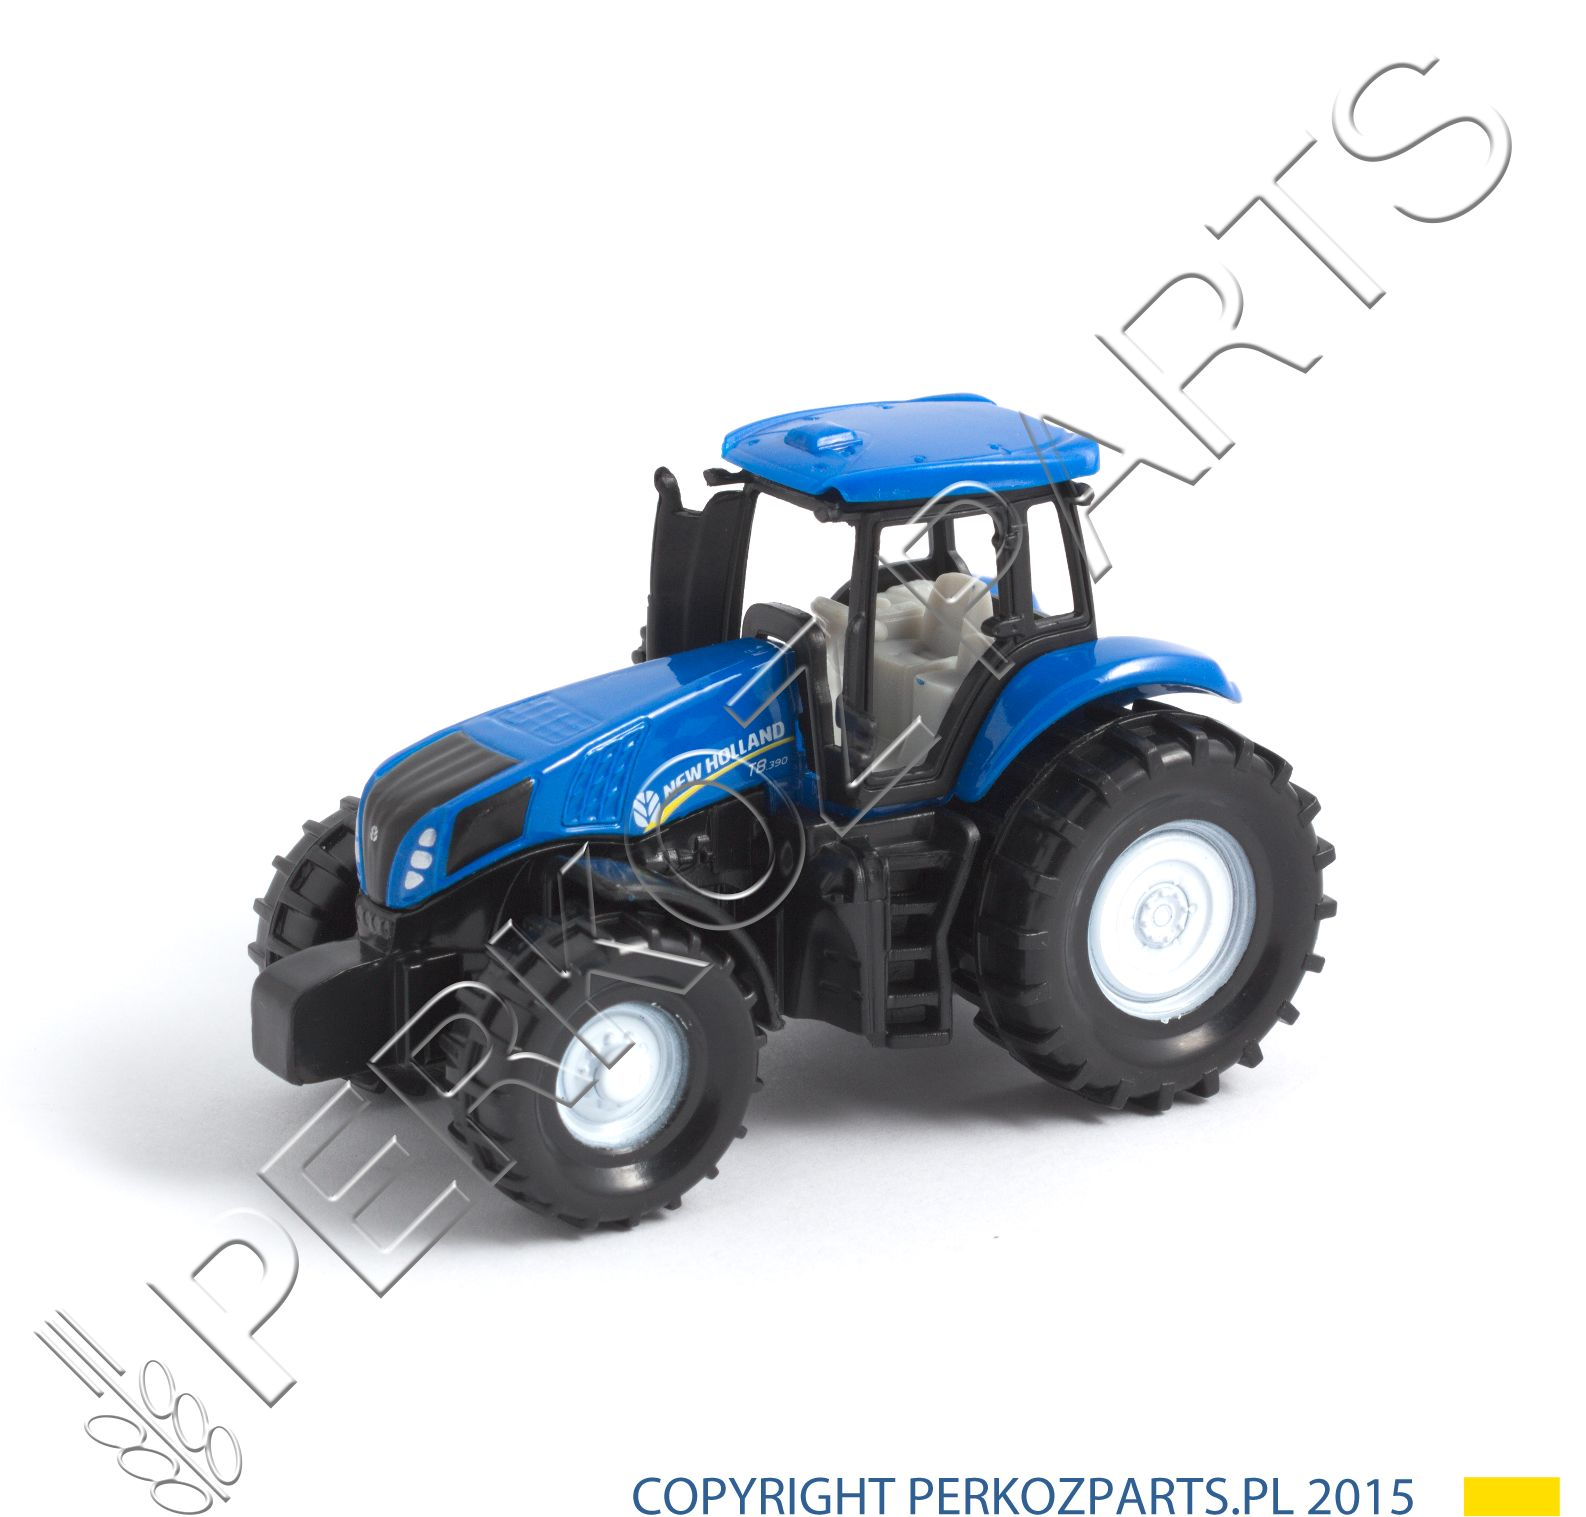 TRAKTOR SIKU NEW HOLLAND T8 .390 (SKALA 1:87) - 6001012